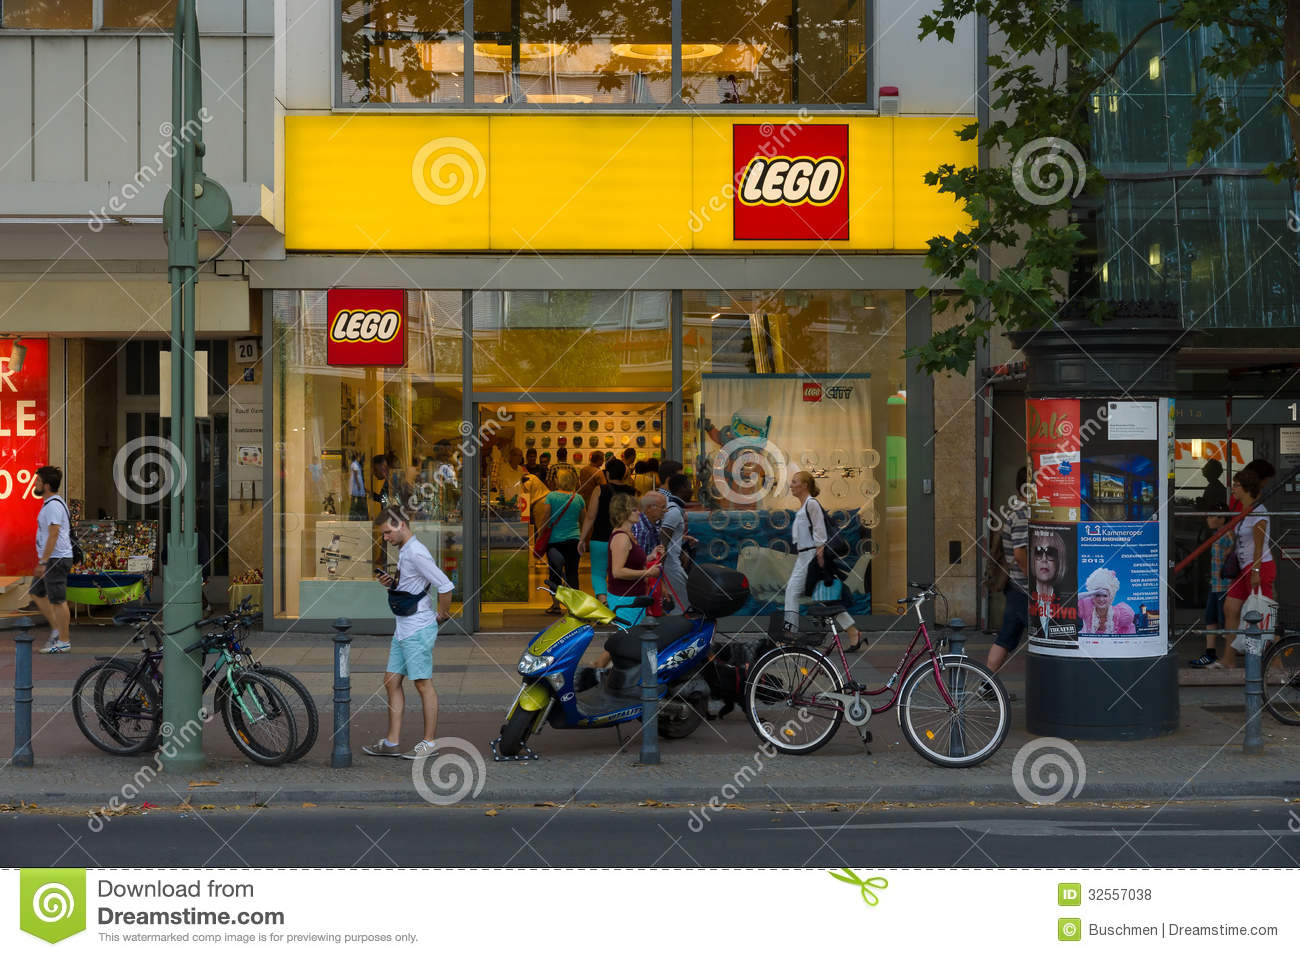 ... toys manufactured by The Lego Group. July 24, 2013, Berlin, Germany